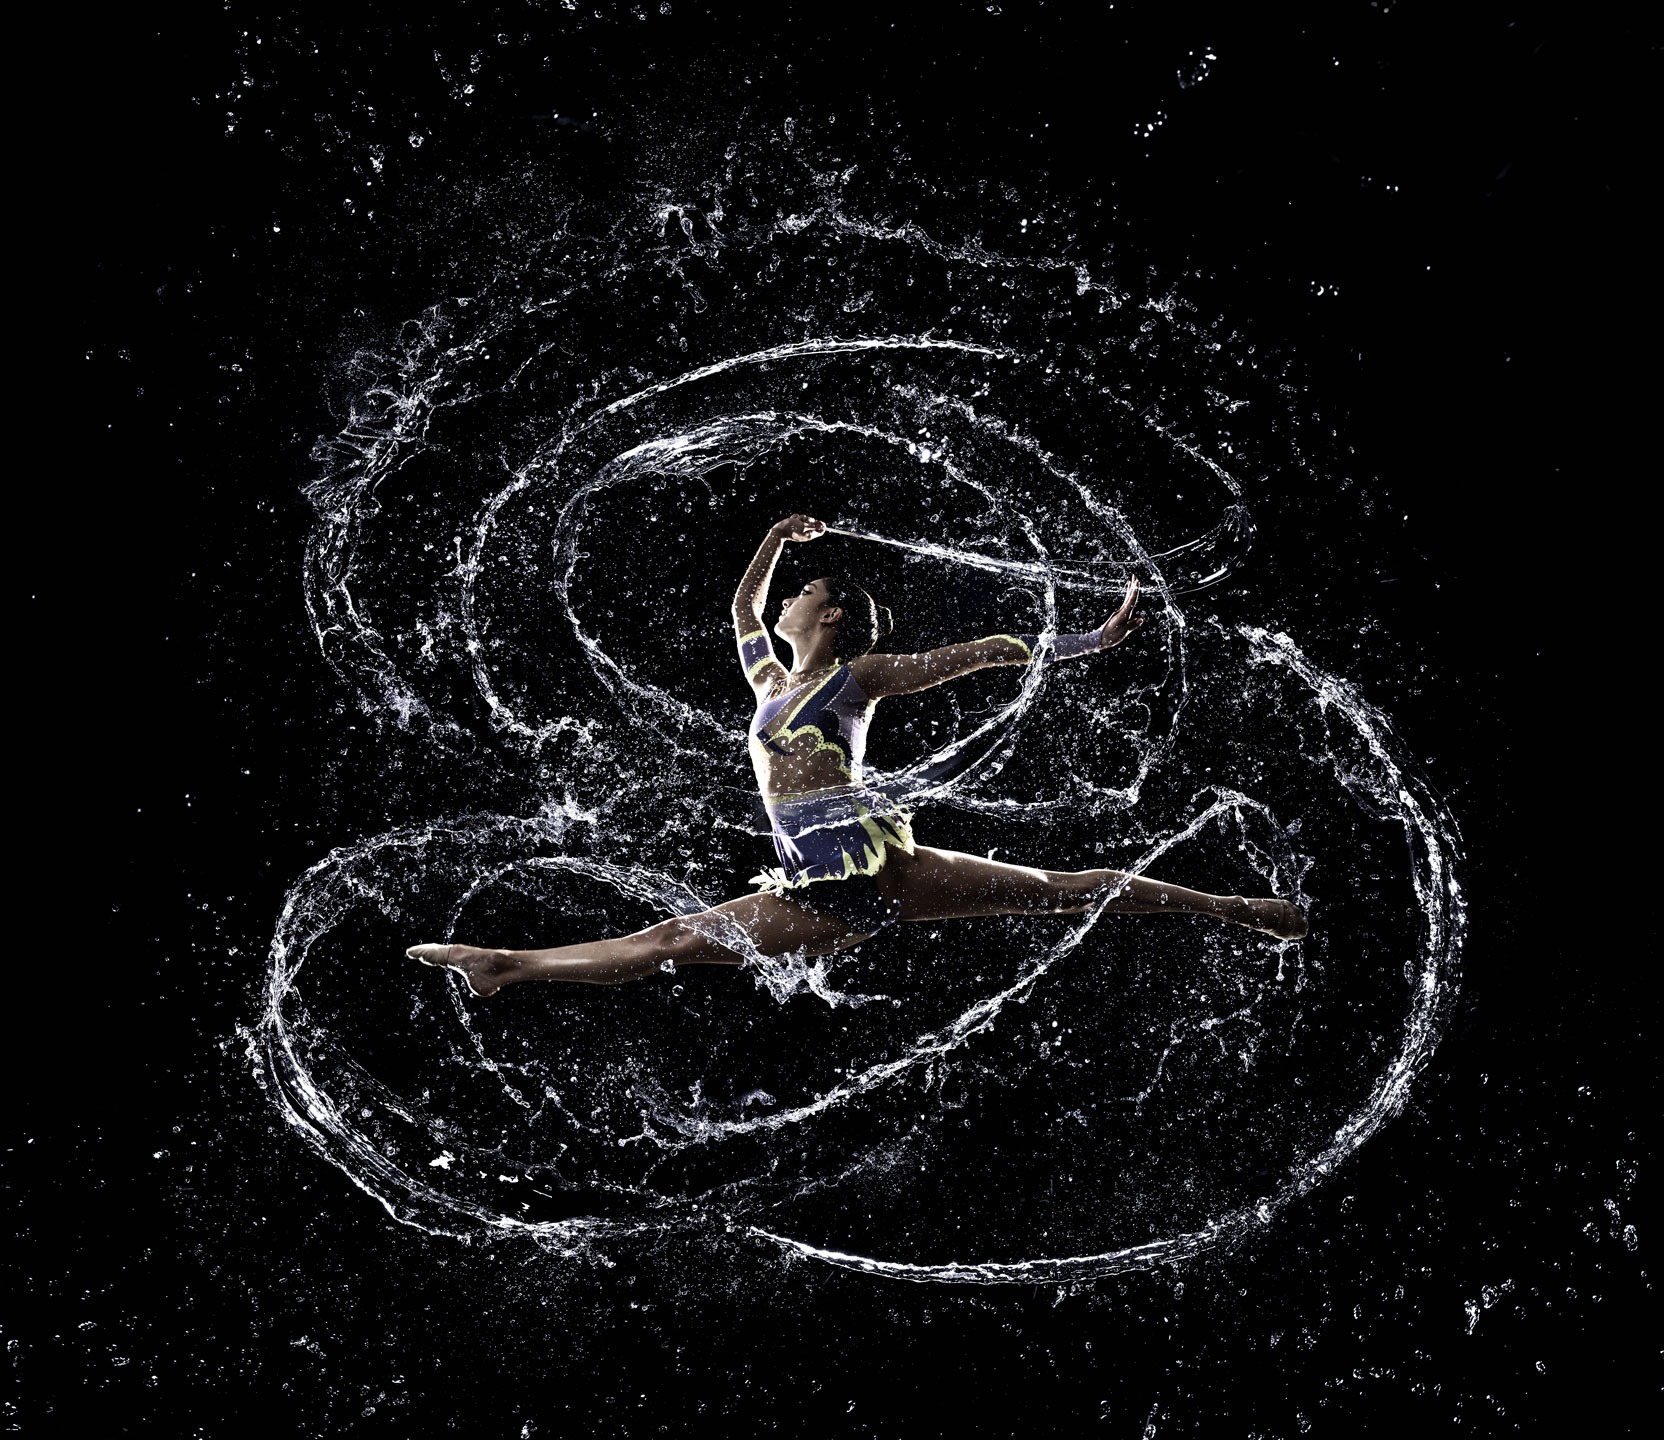 Iain Crawford Sport gymnast dancer acrobat water spray